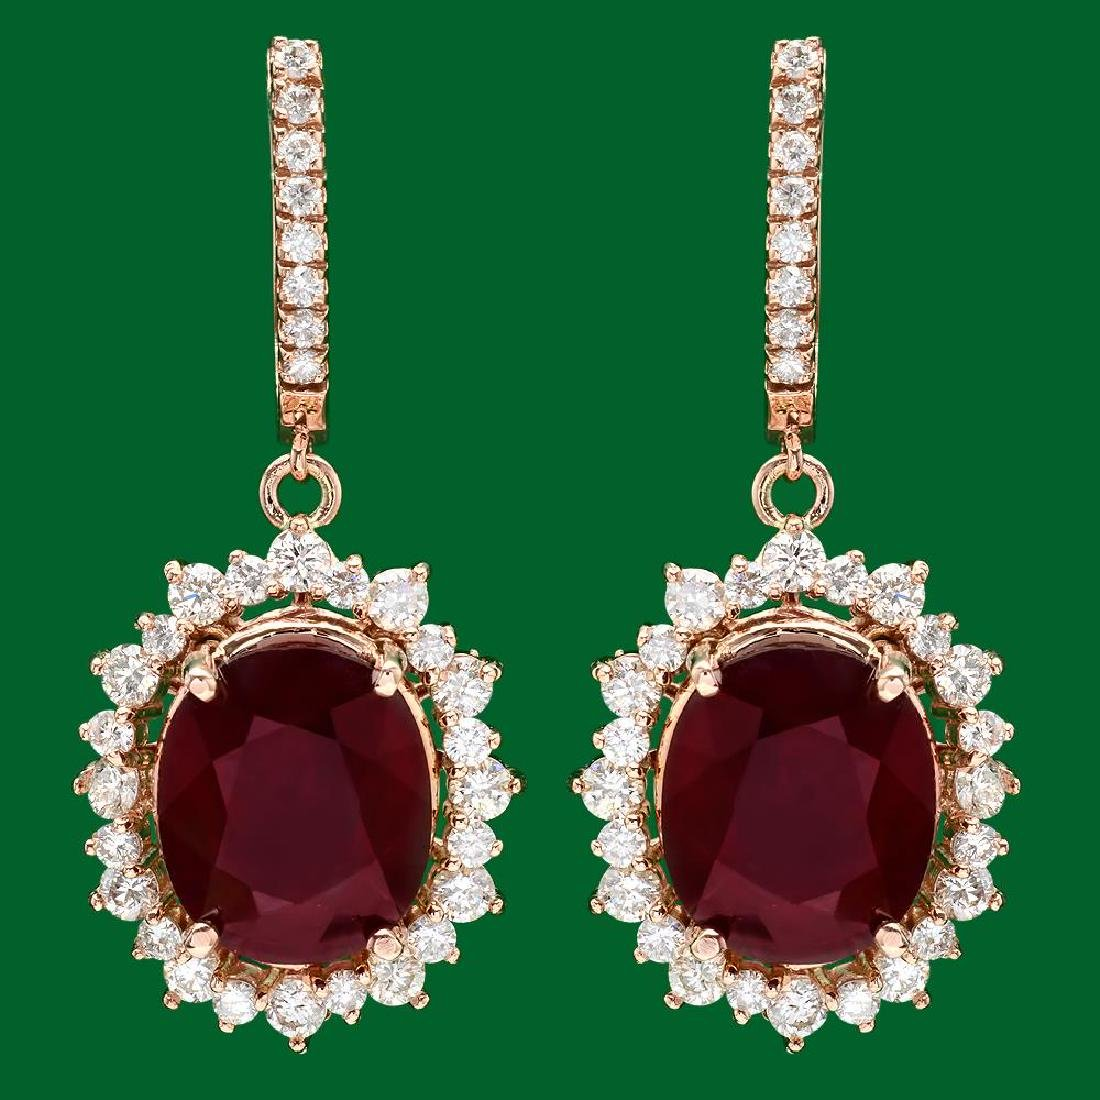 14k Gold 18.88ct Ruby 2.65ct Diamond Earrings